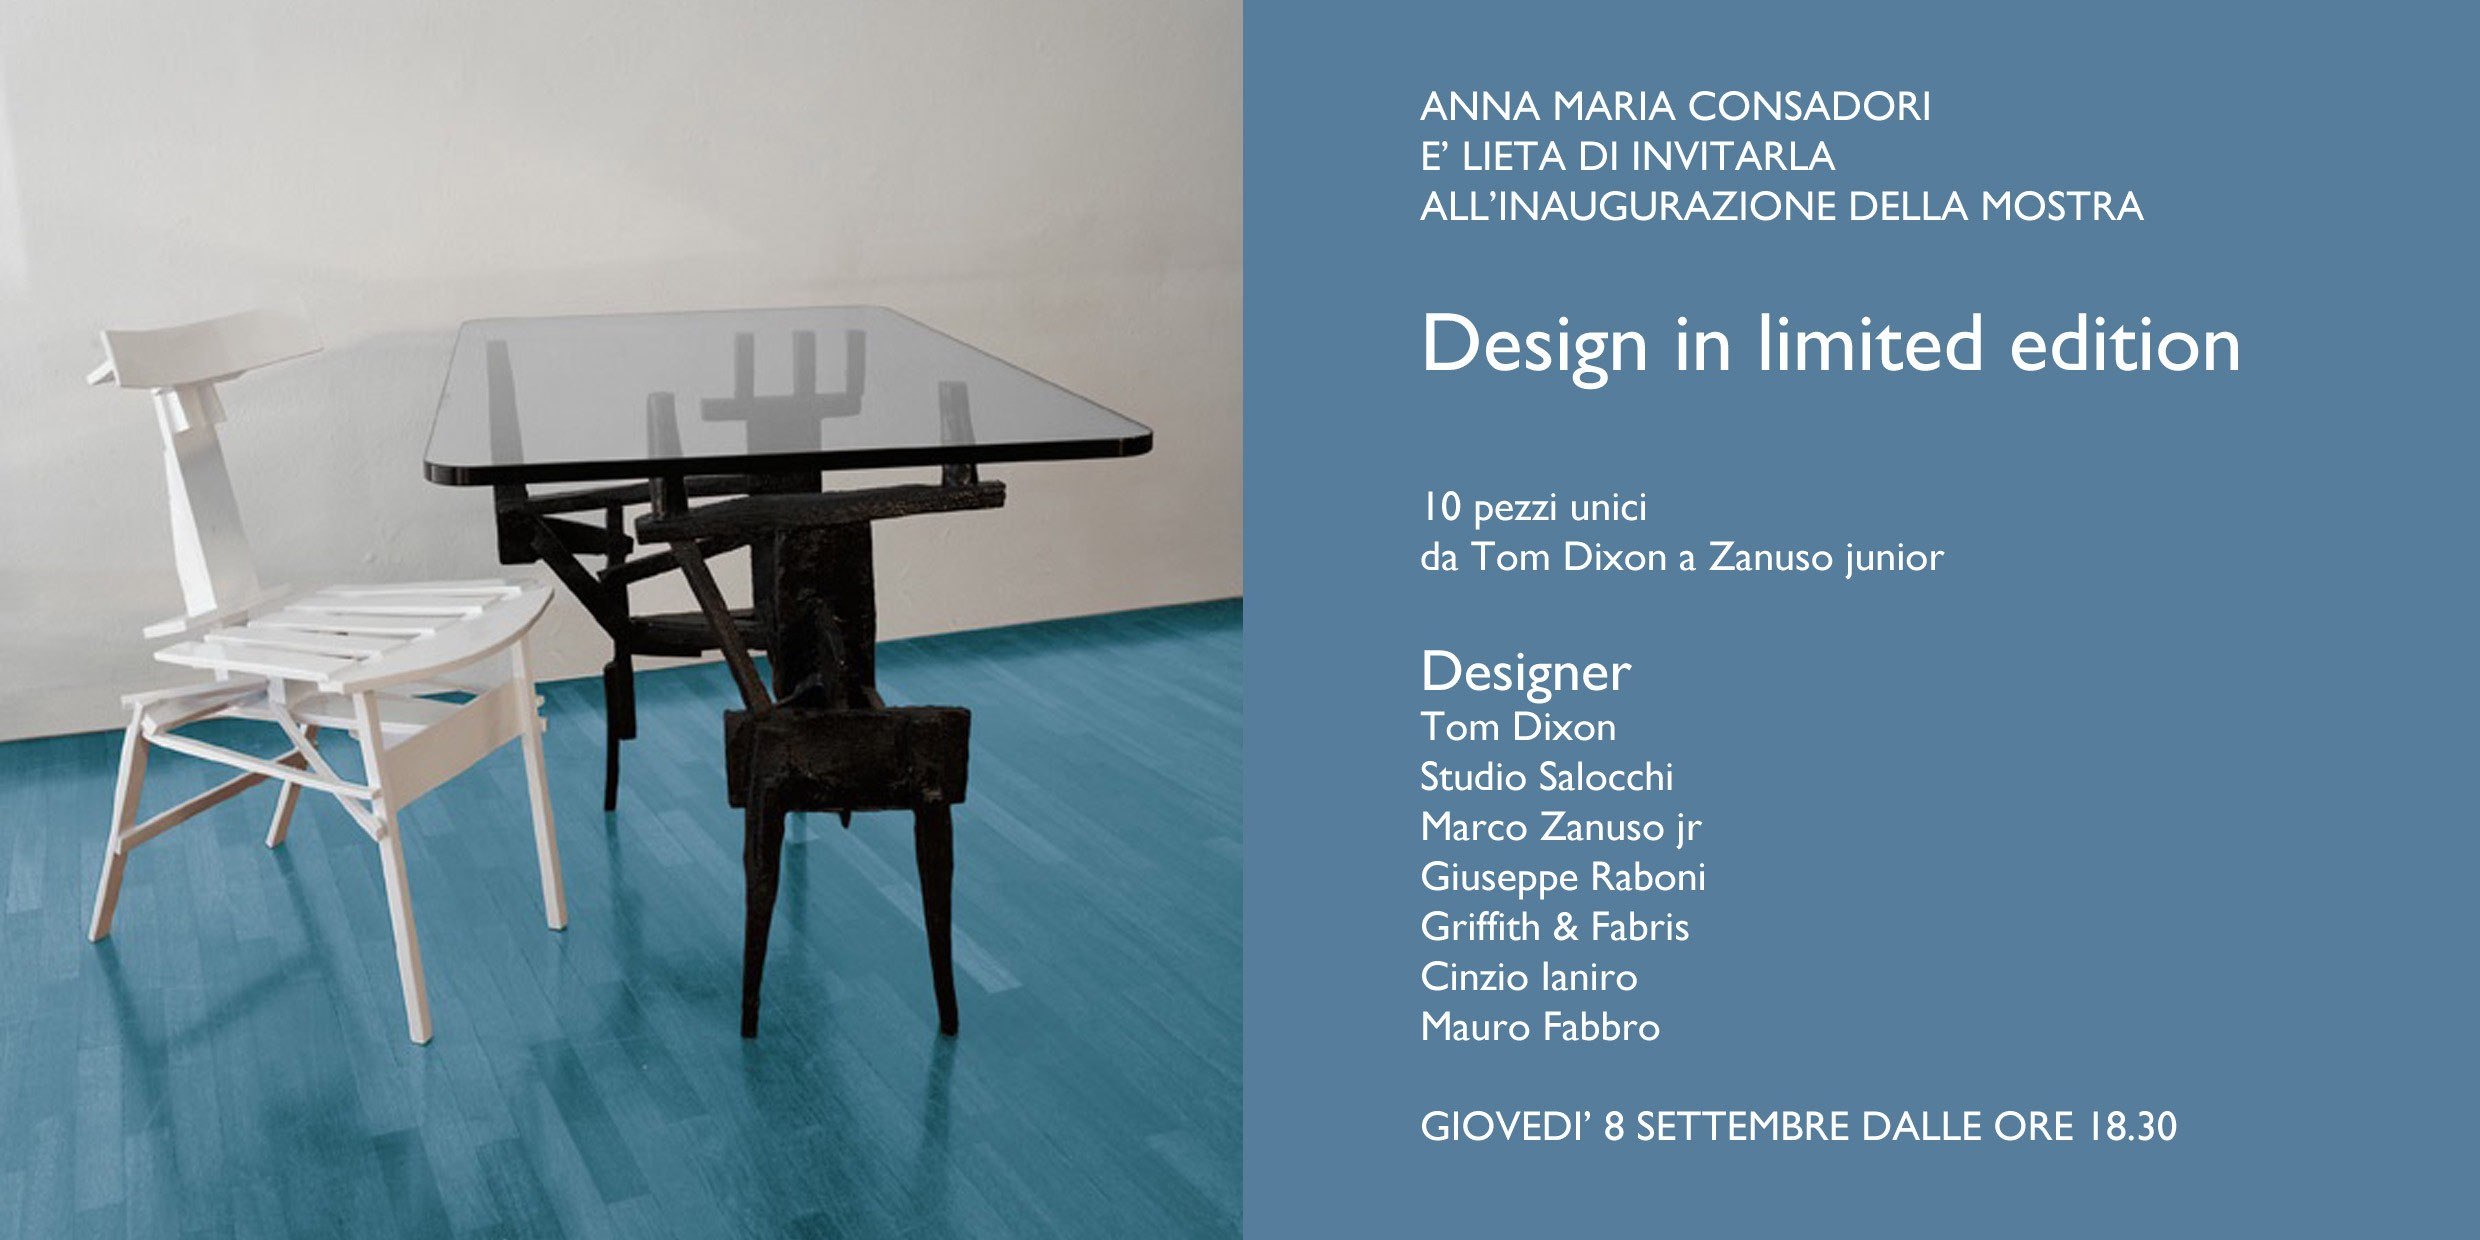 Design Limited Edition | Galleria Consadori 2011